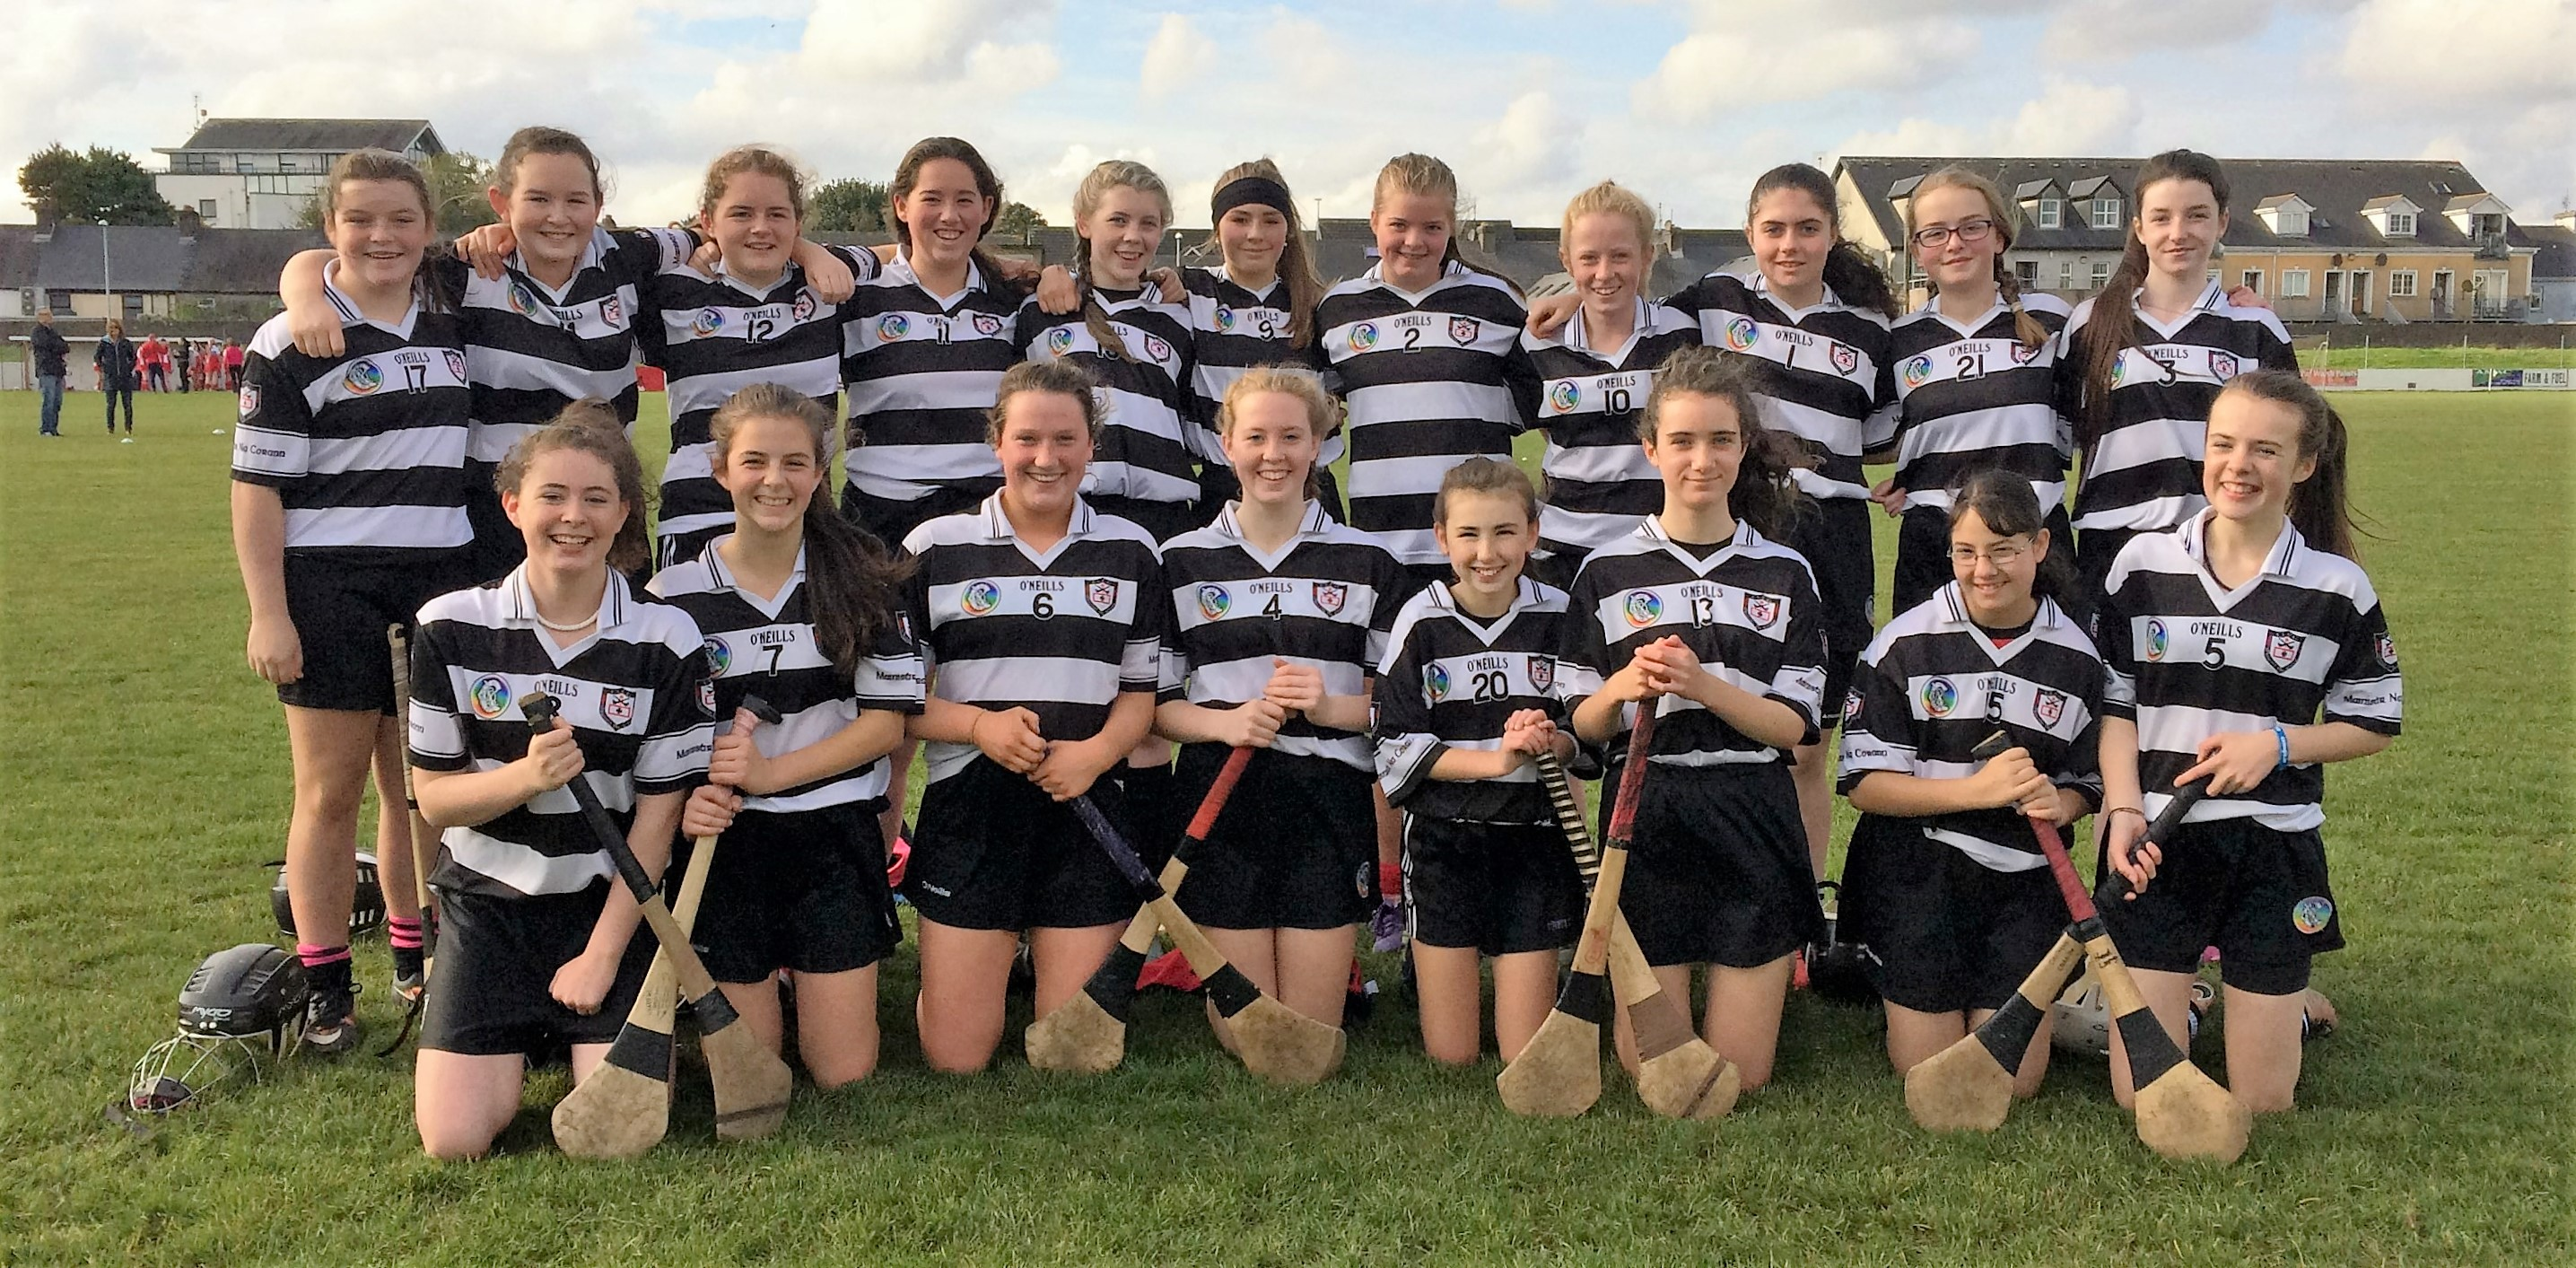 78cbfedfb7a9 A huge thank you to Eoin Kennedy   Midleton Camogie Club Committee for  organising the tournament and to the parents for providing much needed  refreshments ...